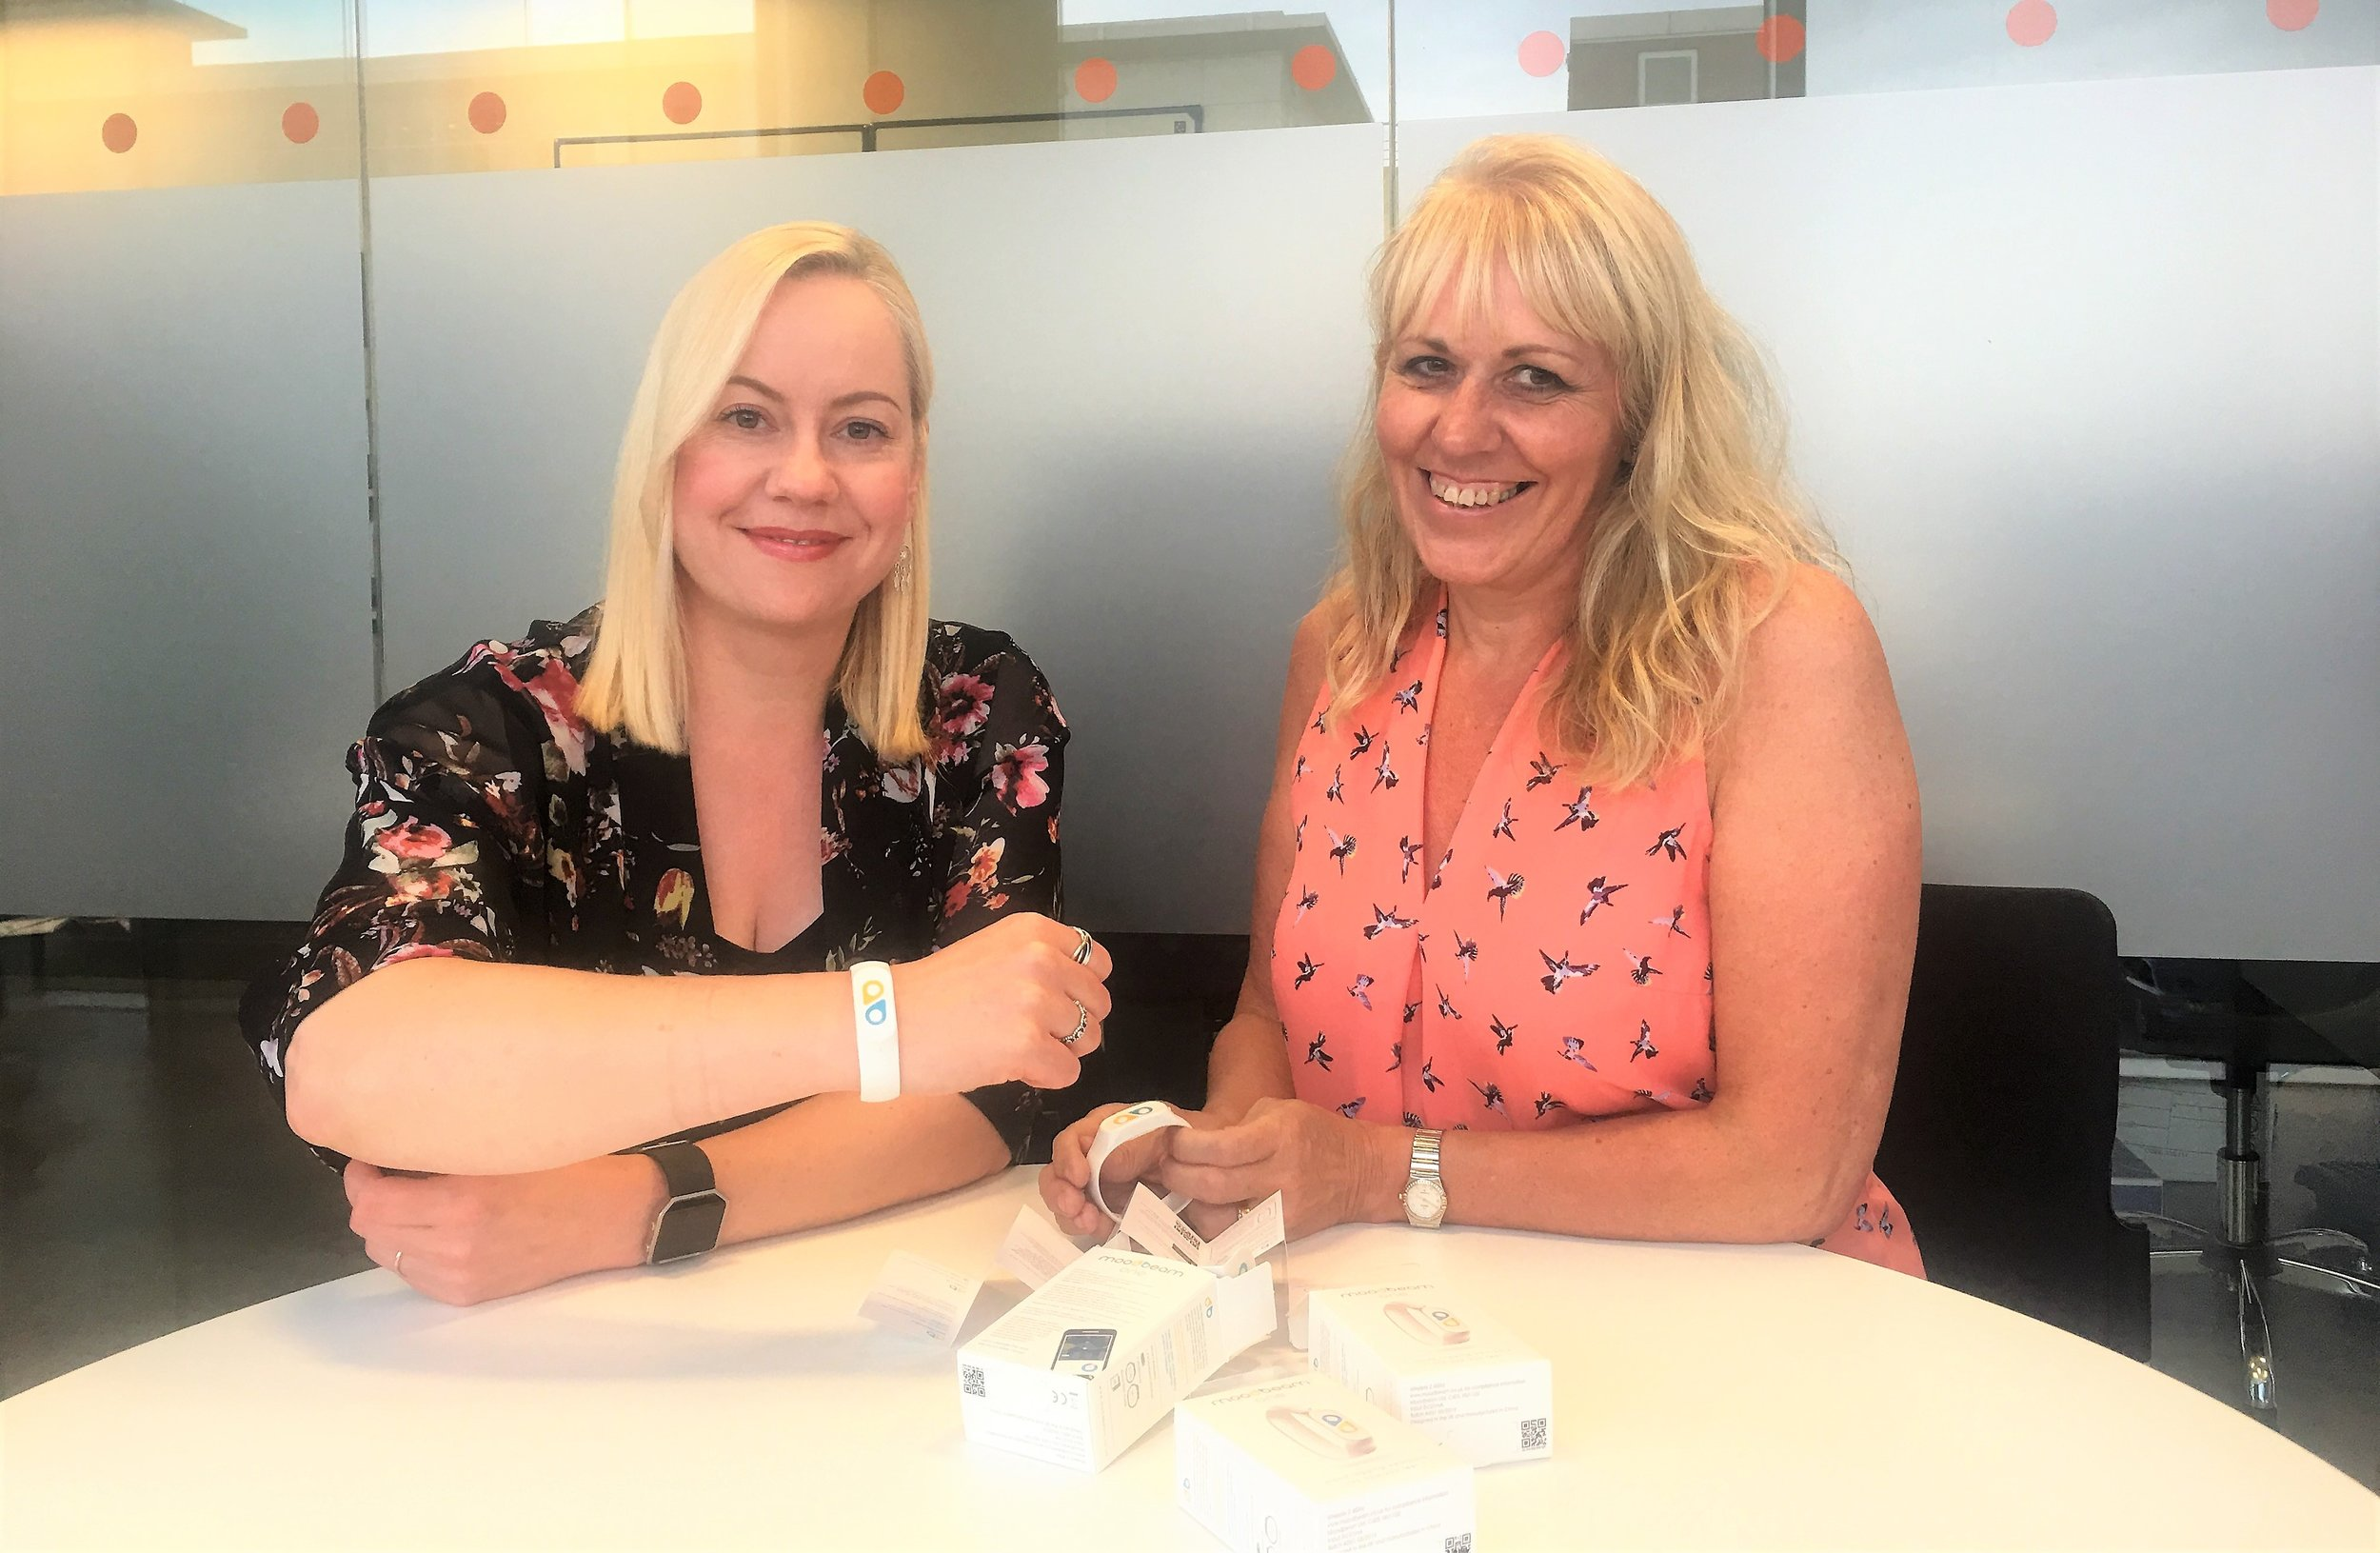 Spencer Group Training Administrator Sarah Jarvill, left, shows off her Moodbeam wristband with Human Resources Director Yvonne Moir. The company has become the first engineering business and among the first employers to adopt the pioneering device.